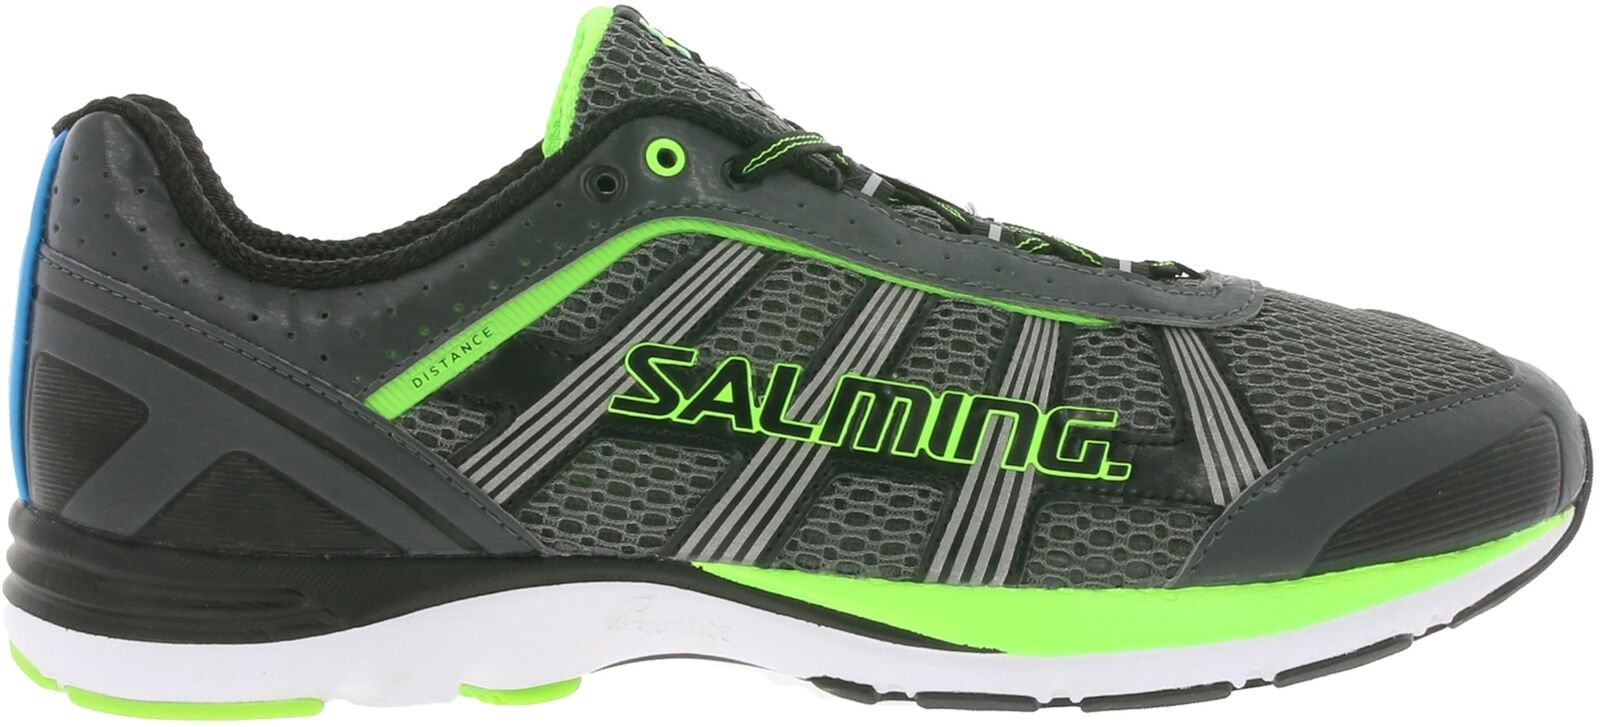 Salming Distance A2 Mens Running shoes Cushioned Trainers Grey